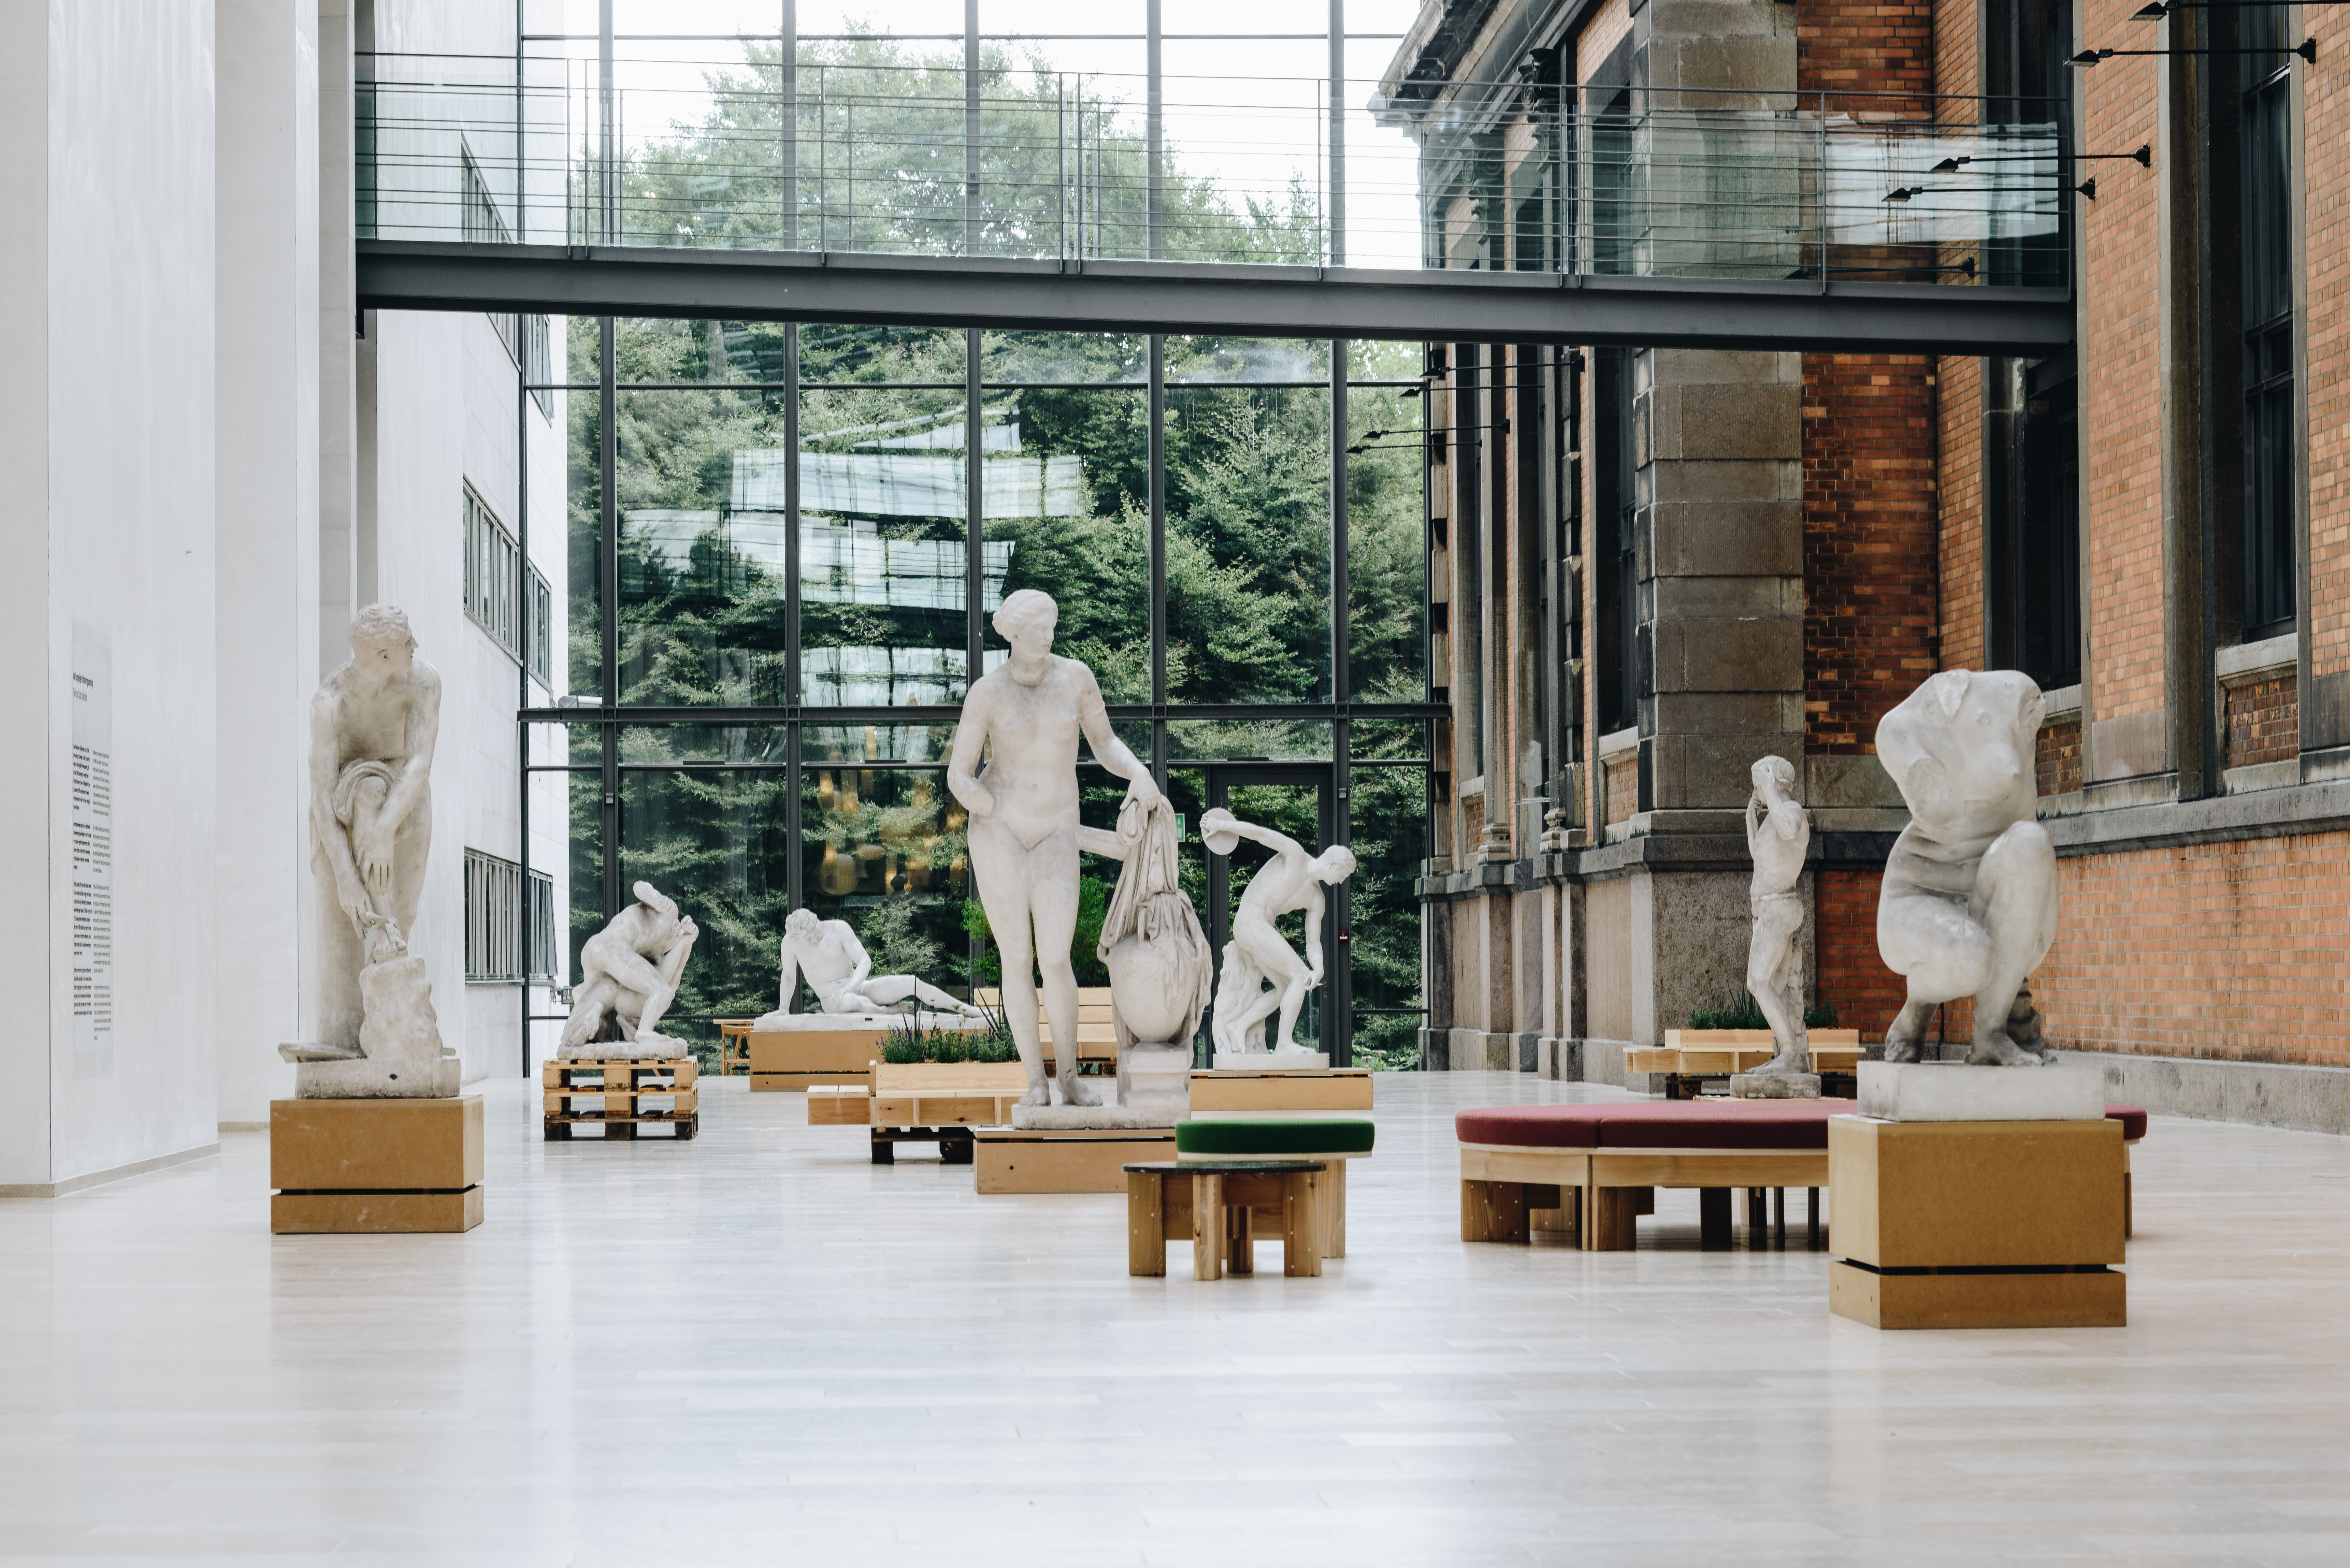 Statues in a museum